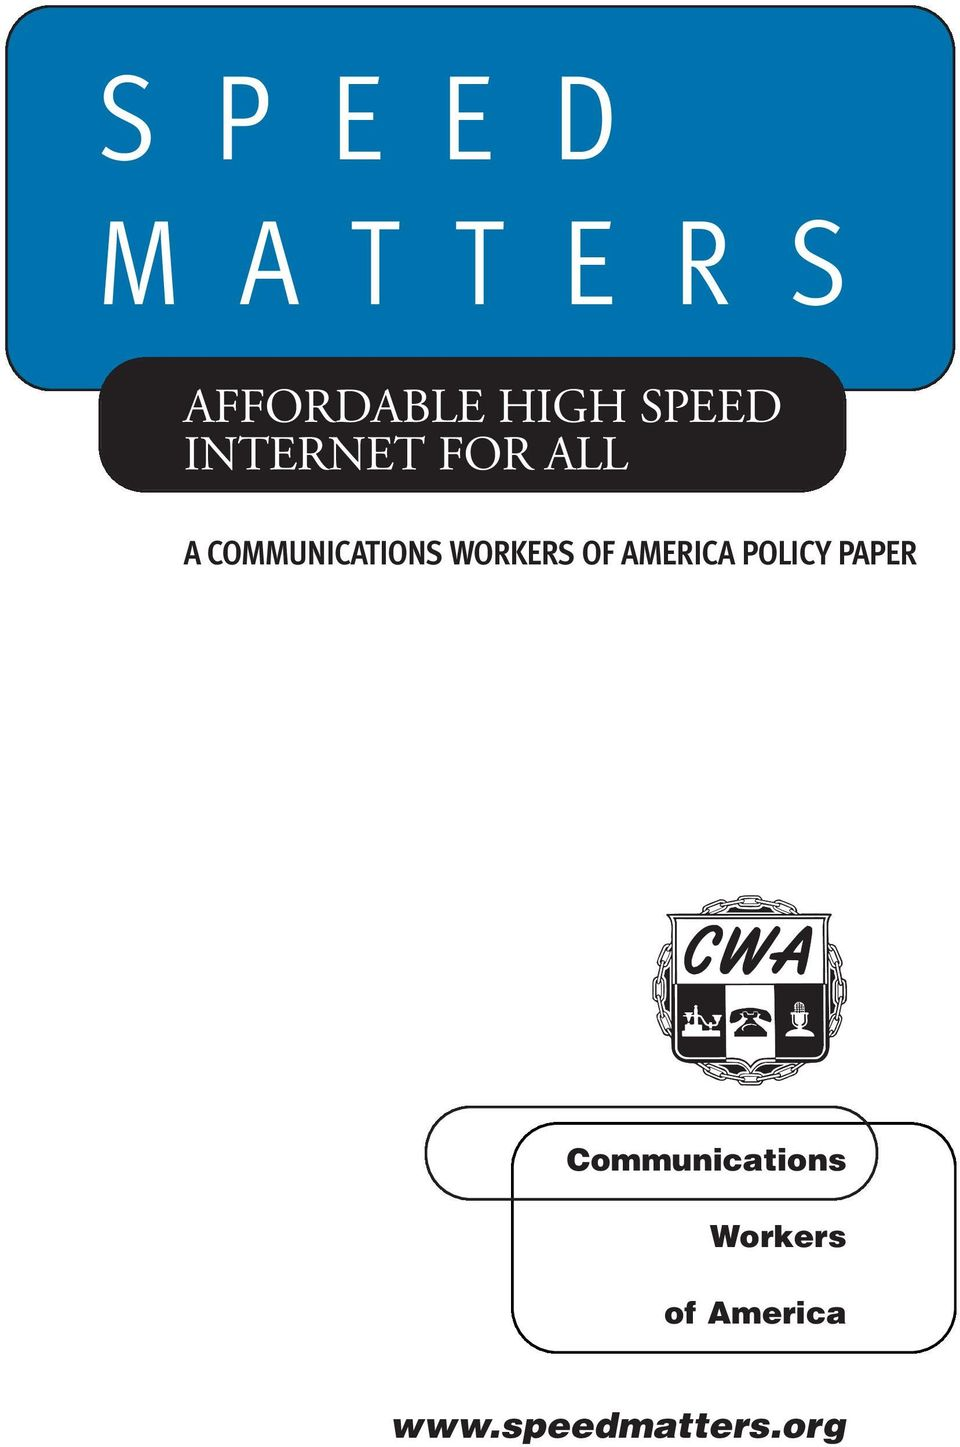 WORKERS OF AMERICA POLICY PAPER